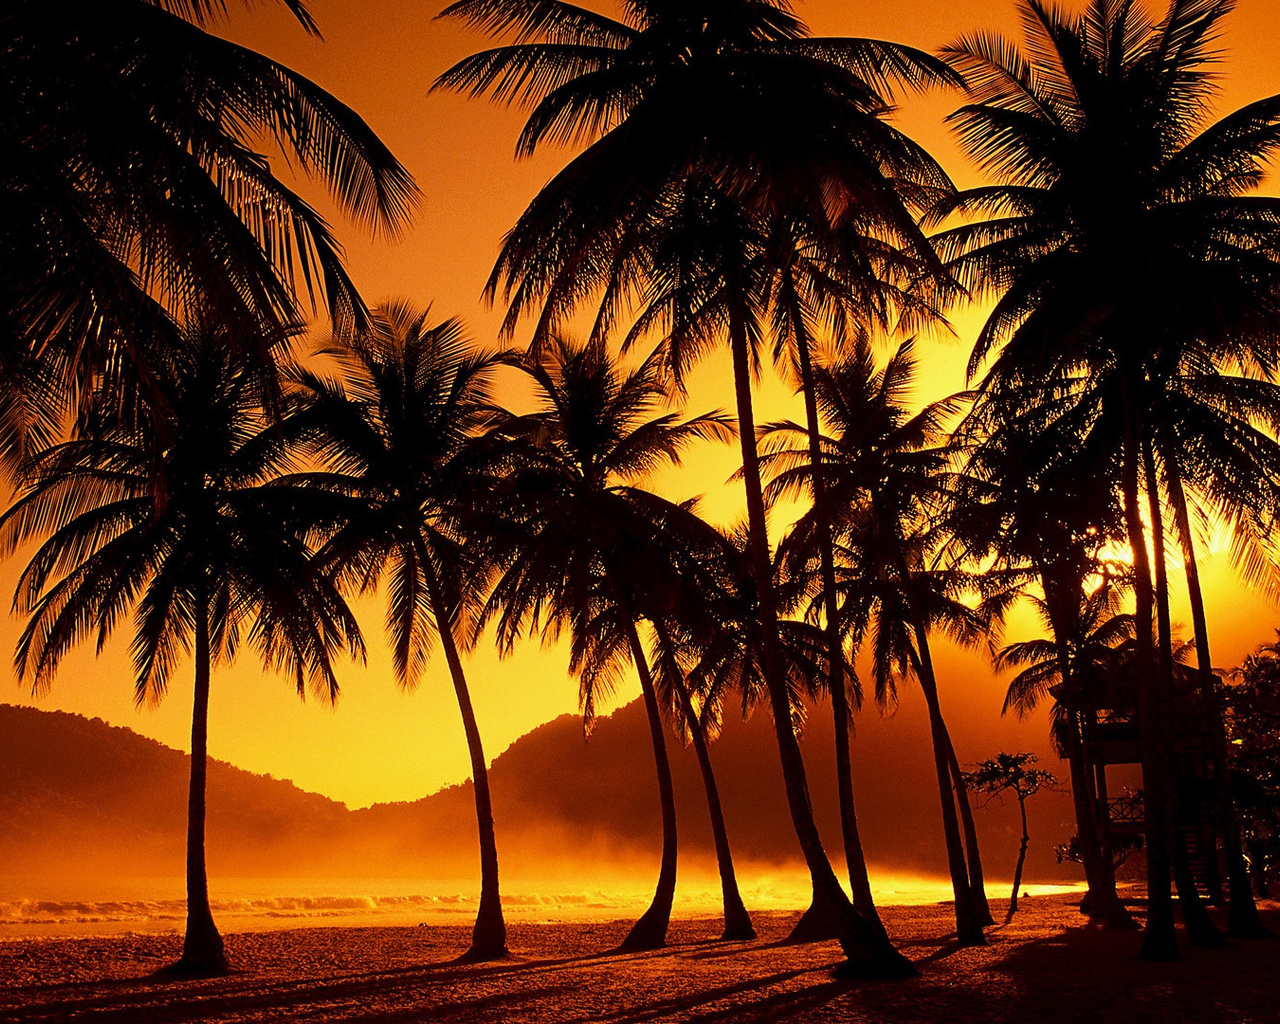 Wallpaper sunset tropical palm trees night nature large 1280x1024 1280x1024